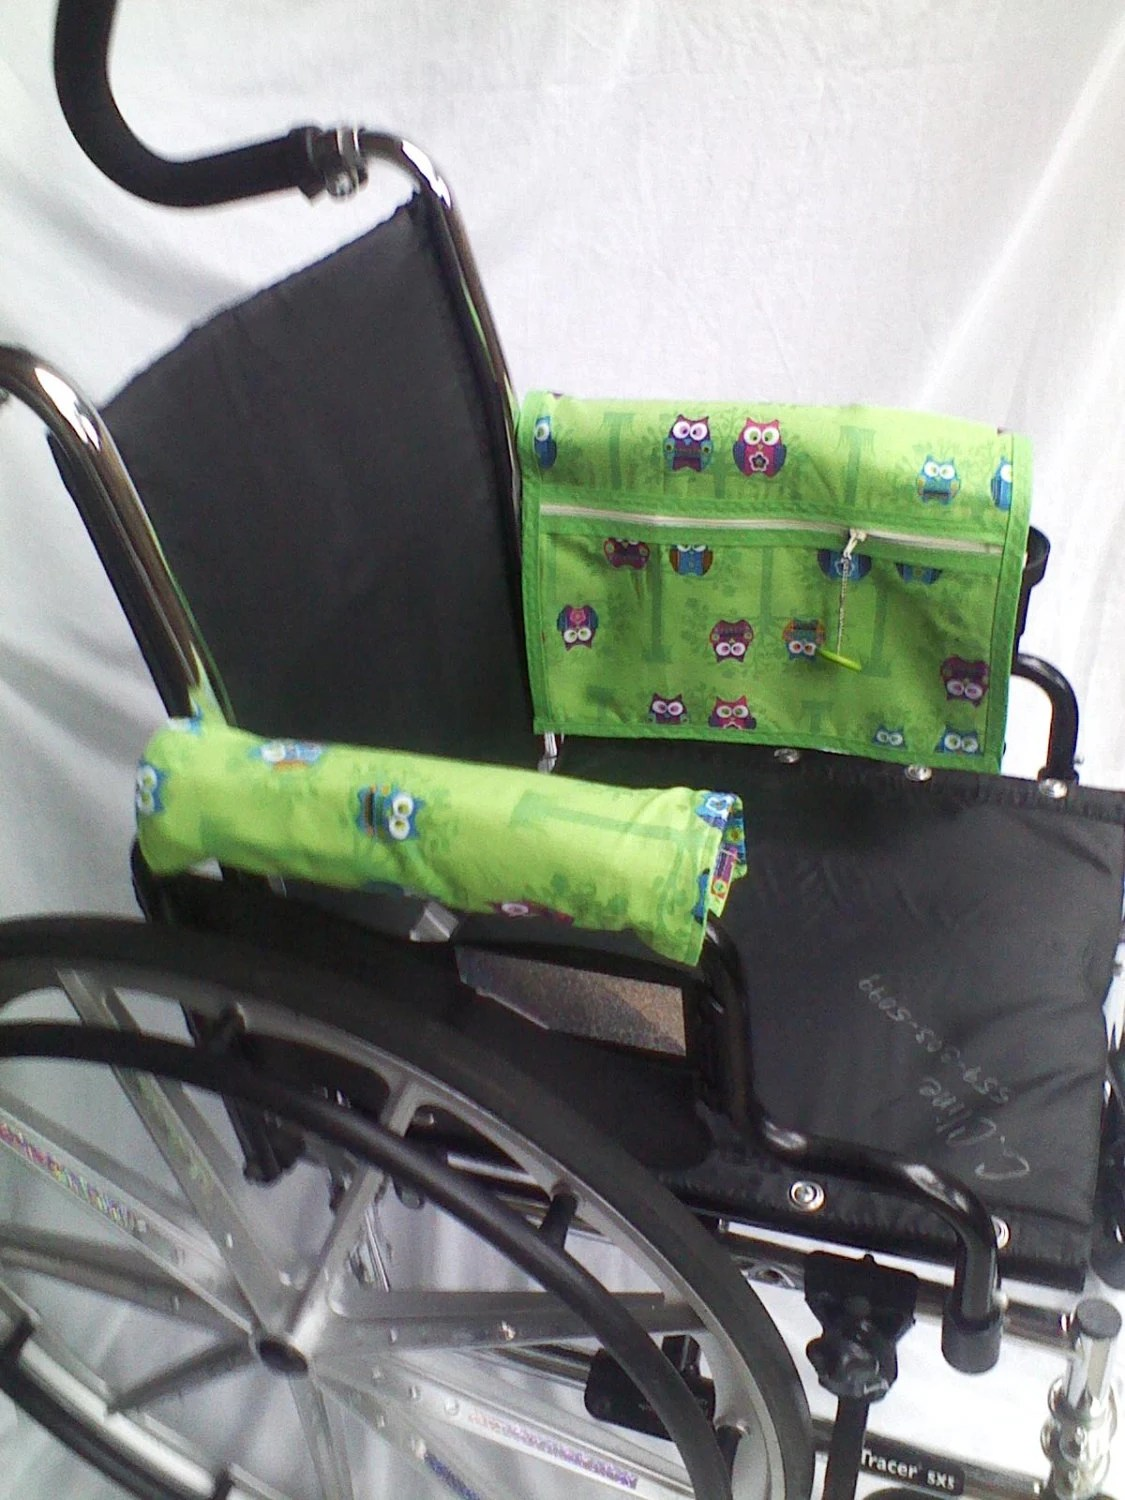 chair arm protectors with pockets web lawn chairs wheelchair armrest pouch bag or walkerlined zippered pocket